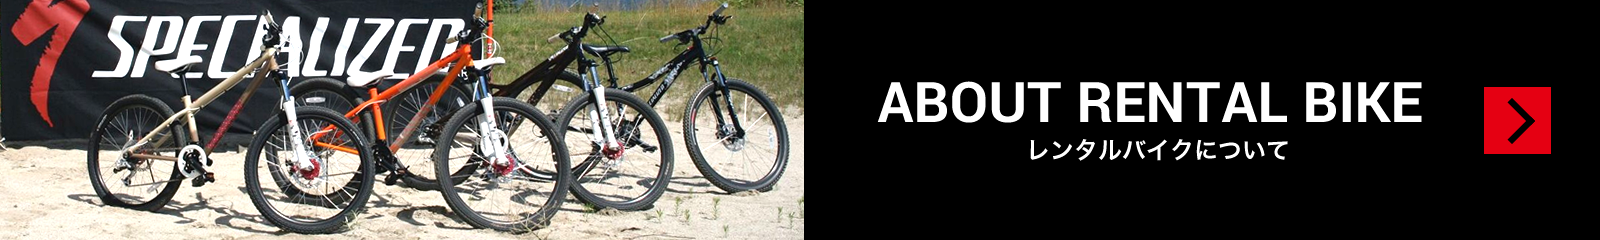 ABOUT RENTAL BIKE